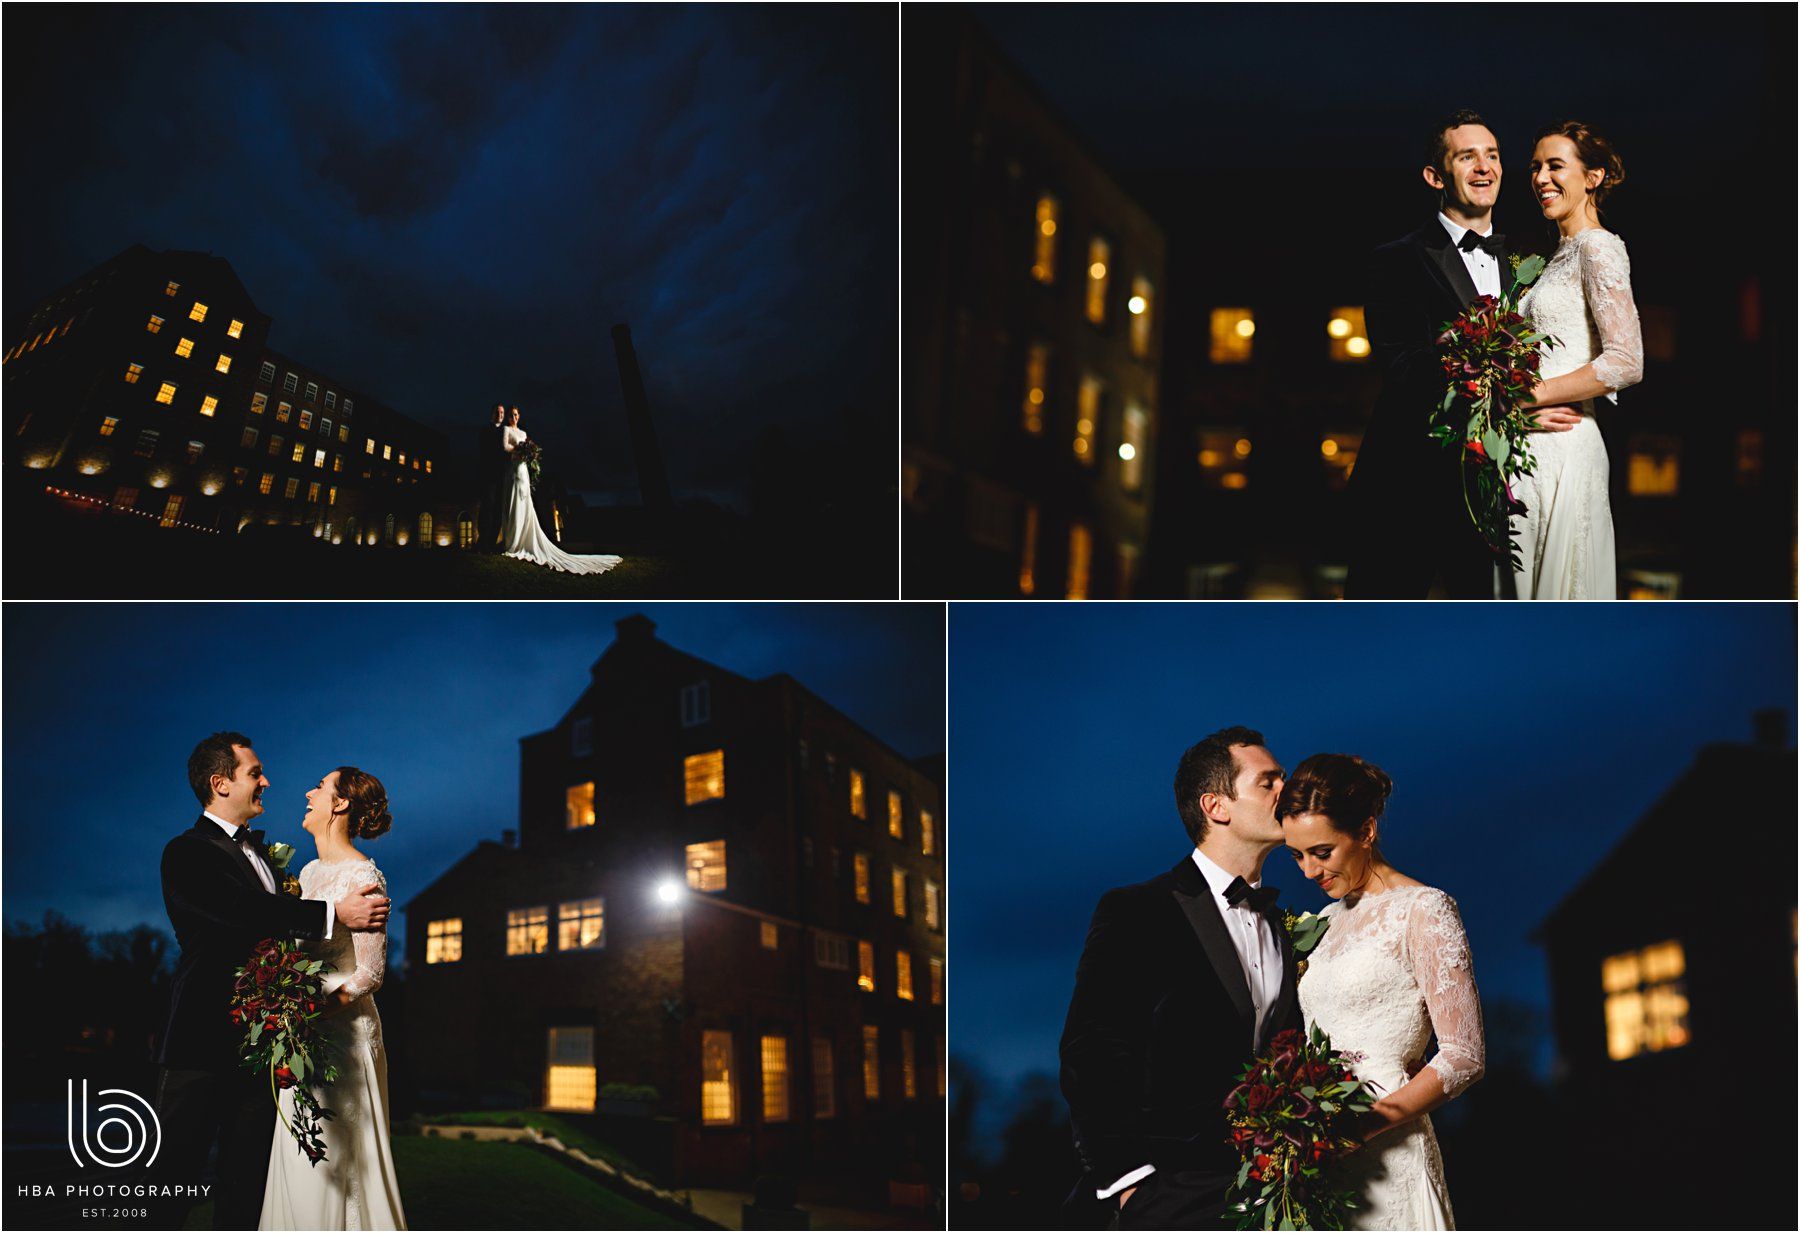 the bride and groom at the west mill